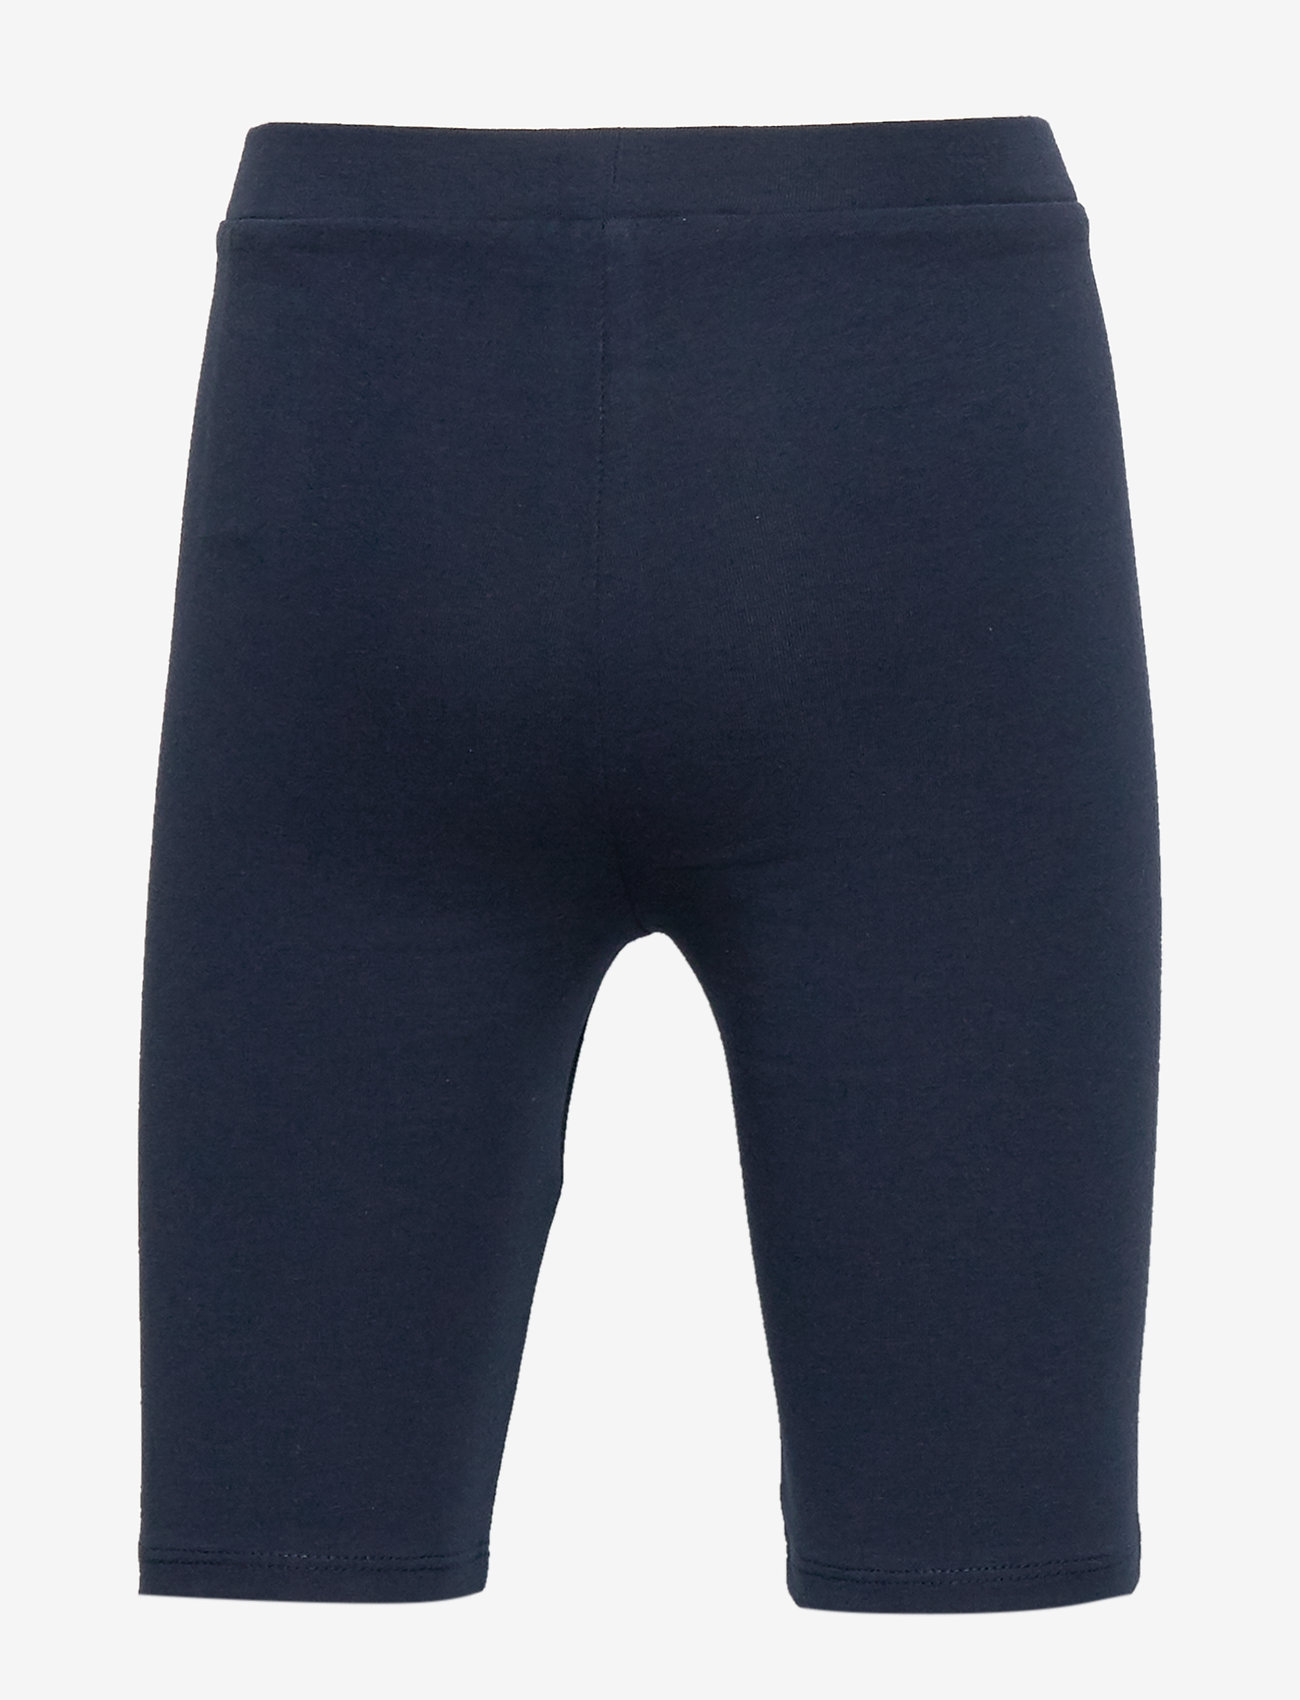 Tommy Hilfiger - ESSENTIAL CYCLING SHORTS - shorts - twilight navy - 1